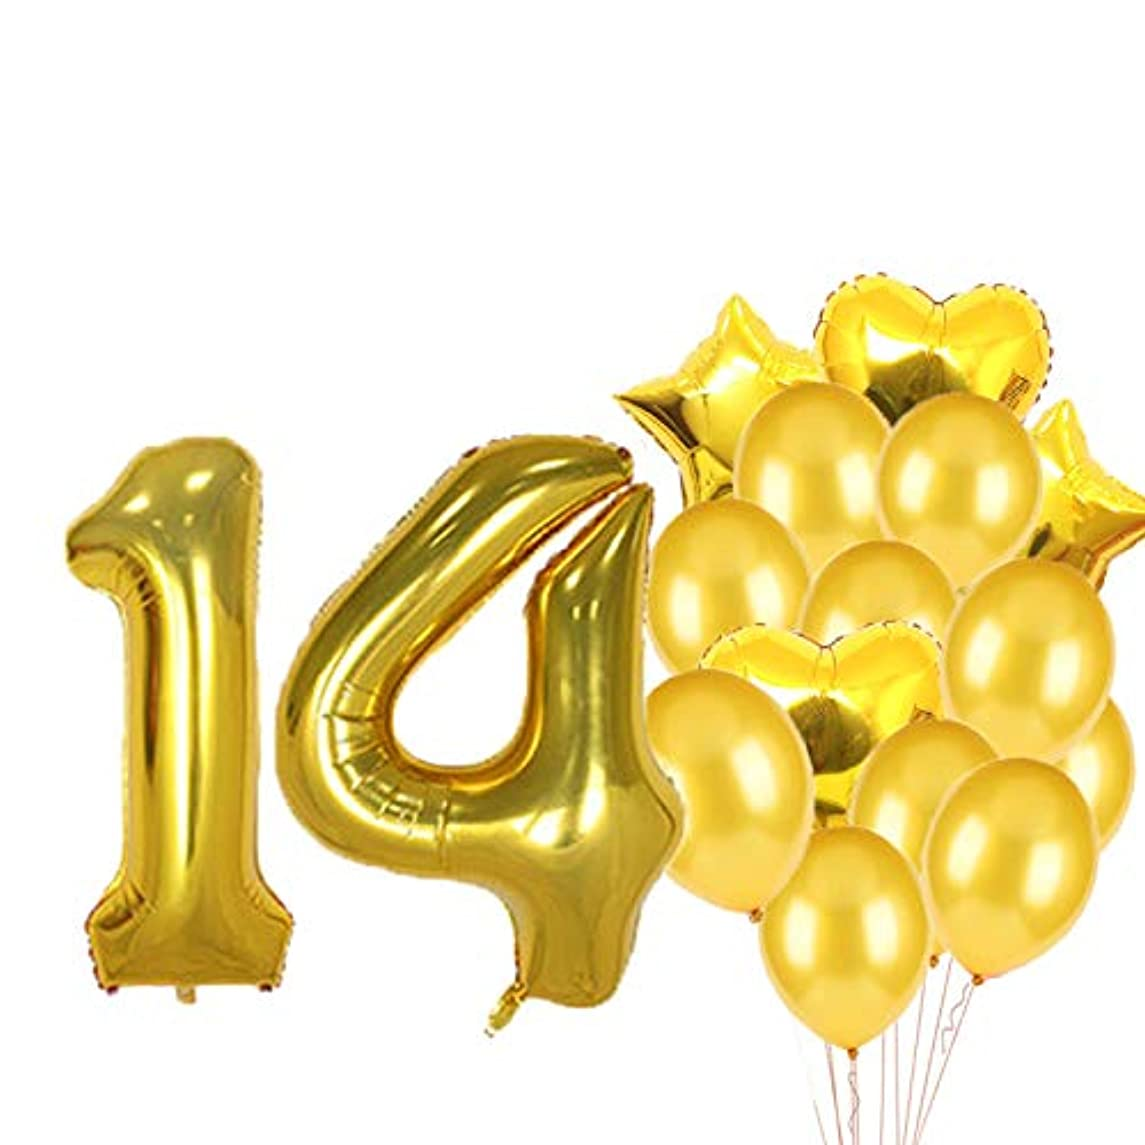 Sweet 14th Birthday Decorations Party Supplies,Gold Number 14 Balloons,14th Foil Mylar Balloons Latex Balloon Decoration,Great 14th Birthday Gifts for Girls,Women,Men,Photo Props